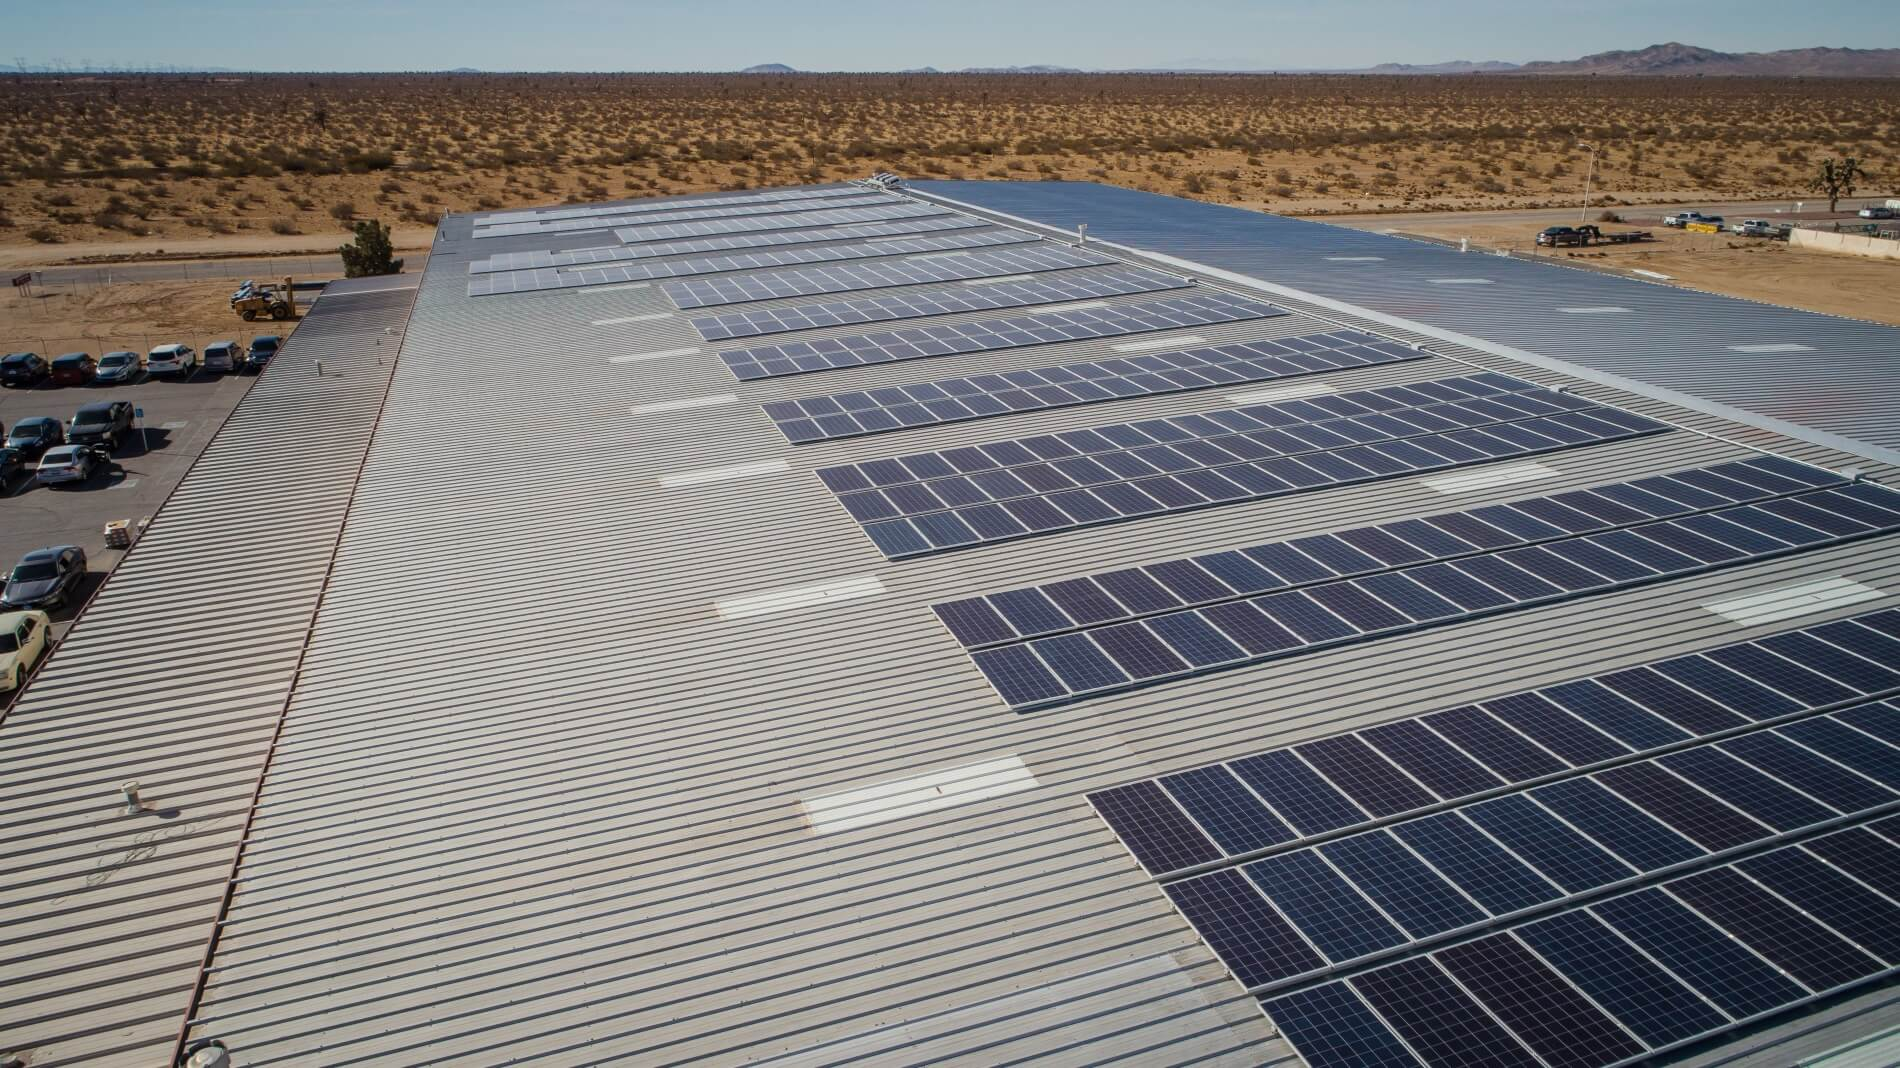 McElroy Metal adds solar panels to California manufacturing plant